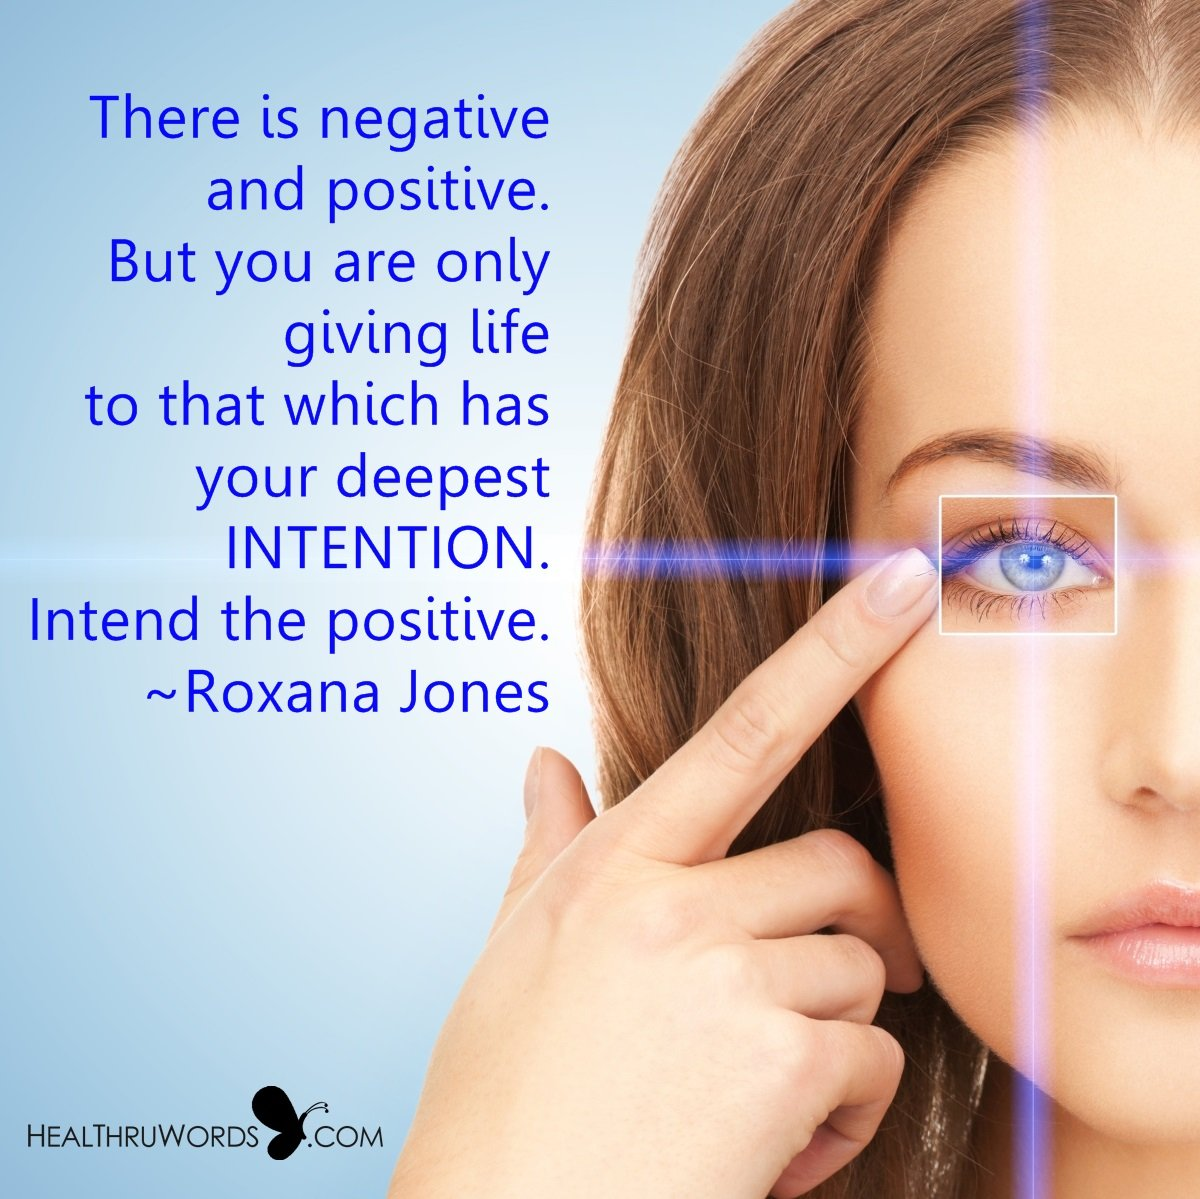 Inspirational Image: Positive Intention